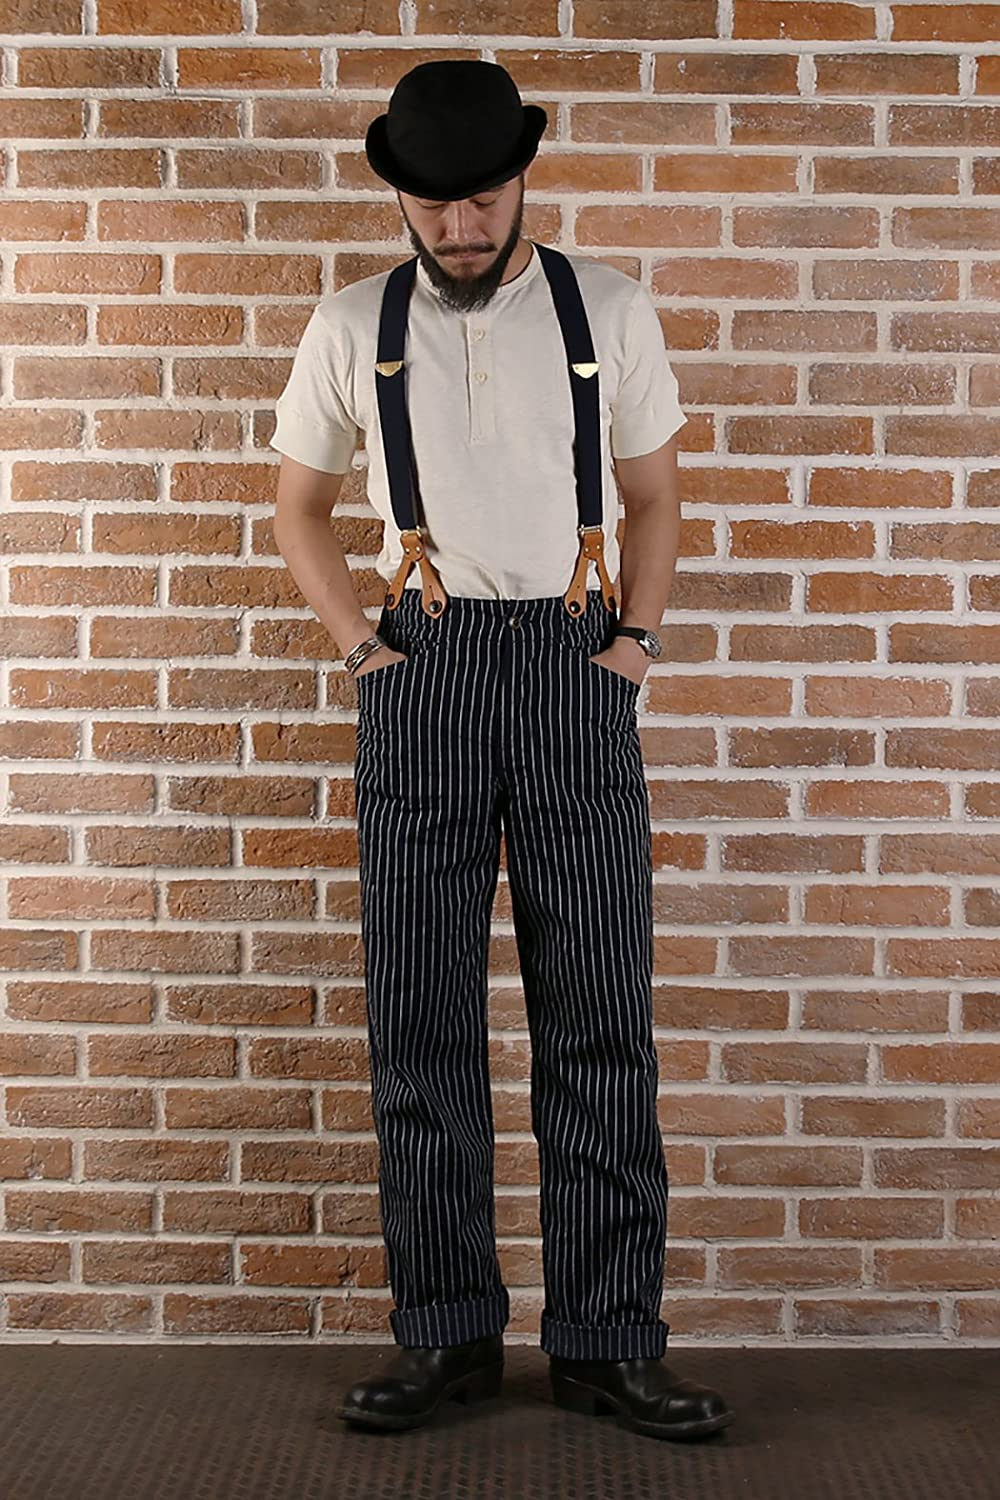 Men's Vintage Pants, Trousers, Jeans, Overalls Deep Blue Striped Loose Waist Strap Overalls Trousers PantsBronson Mens LOT924 $64.99 AT vintagedancer.com